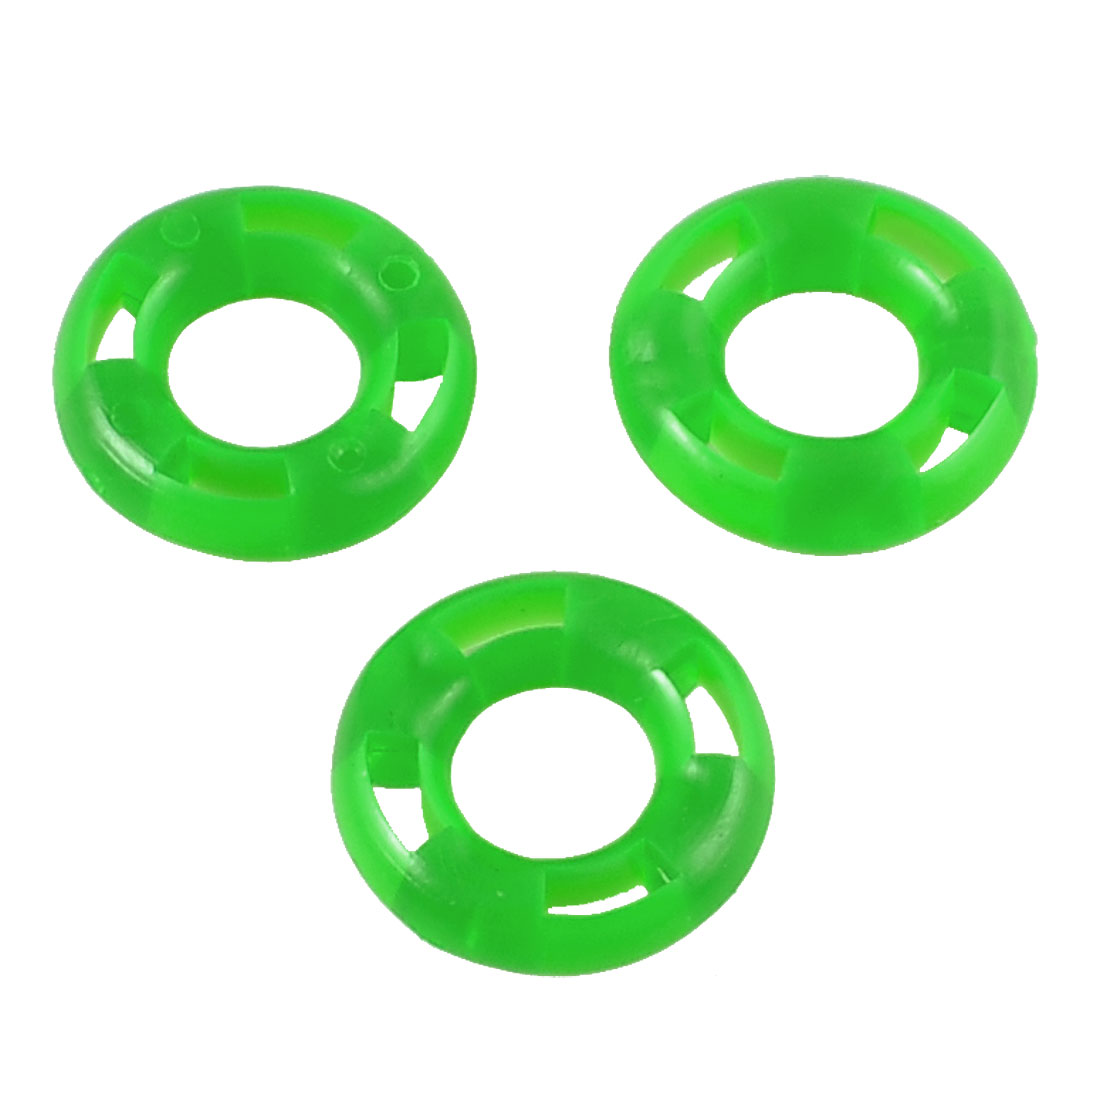 3 Pcs Green Flexible Rubber Fish Pole Stoppers Fishing O Rings 33mmx17mmx9mm